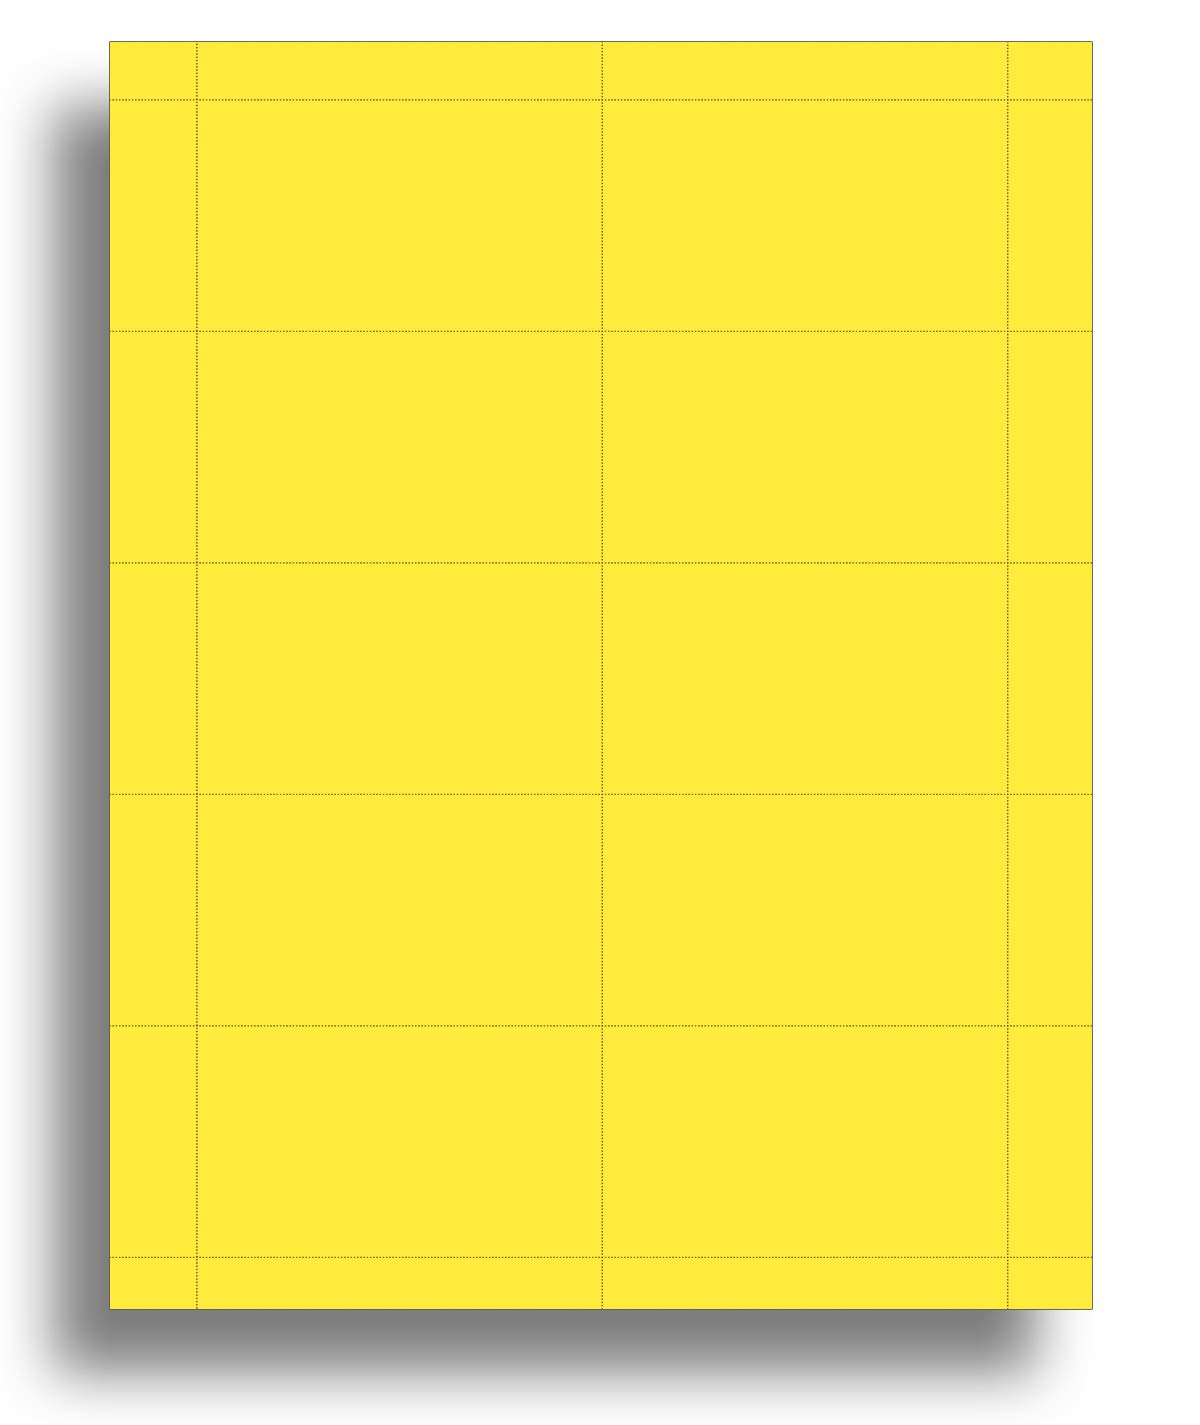 Colored Business Cards - 25 Sheets / 250 Business Cards - Inkjet & Laser - 10 per sheet (Bright Yellow)